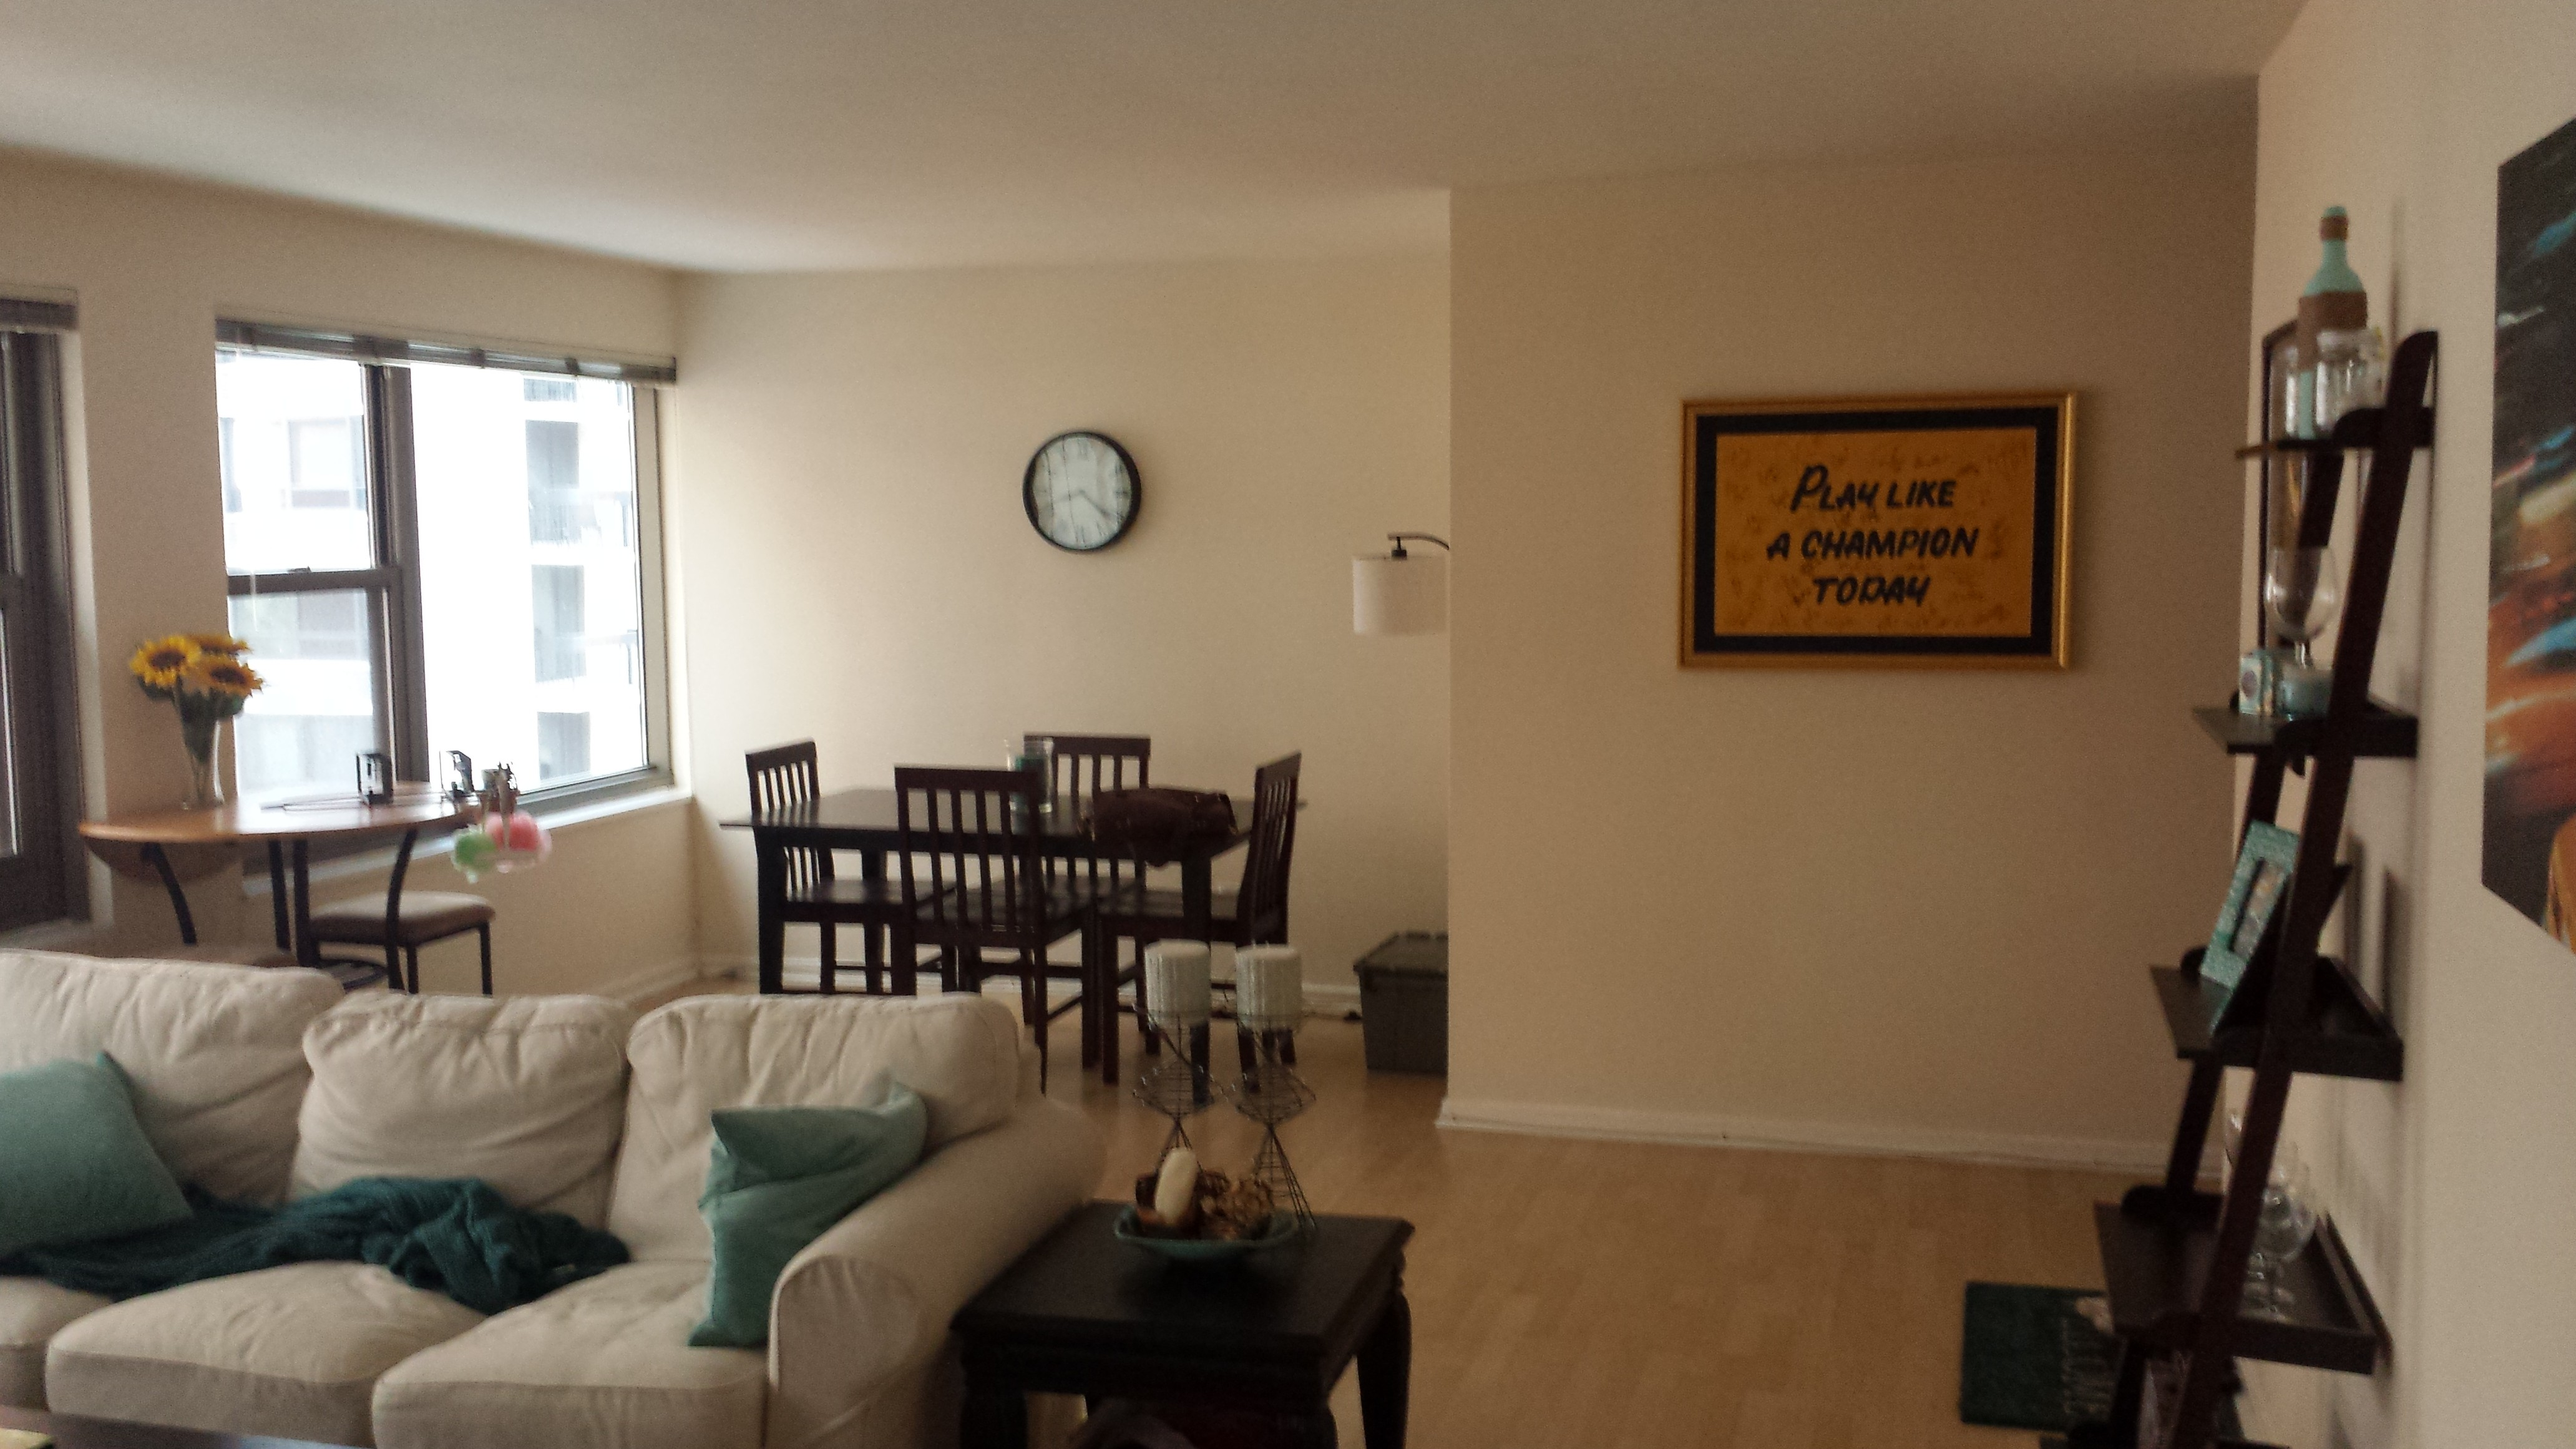 247 East Chestnut Street 603 Chicago Il 60611 2 Bedroom Apartment For Rent For 2 400 Month